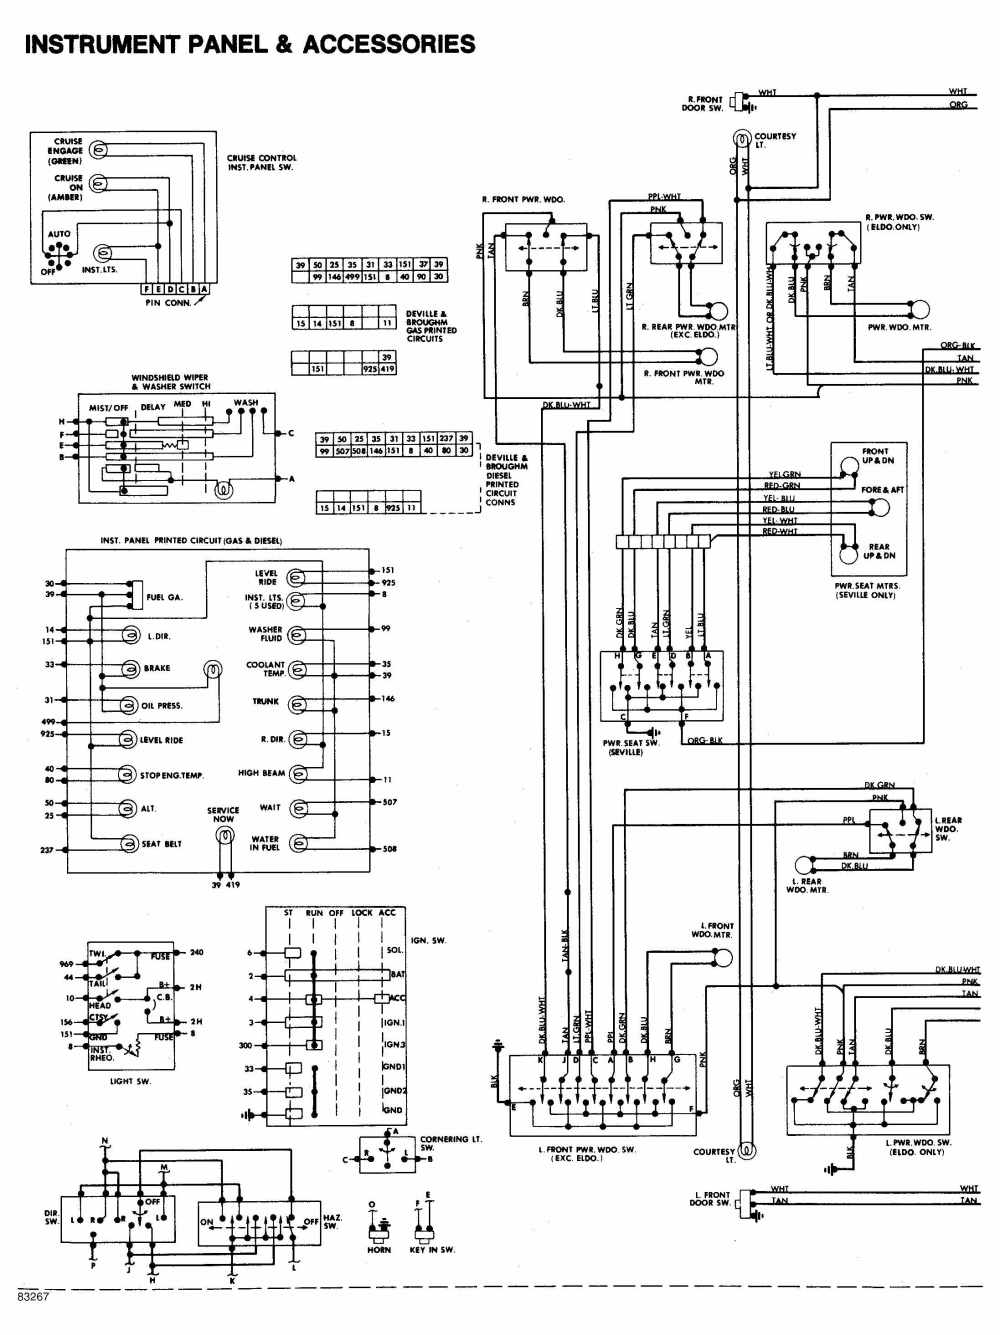 medium resolution of 2008 cts fuse box diagram wiring schematic wiring diagrams img 2006 ford explorer fuse box diagram 2008 cts fuse box diagram